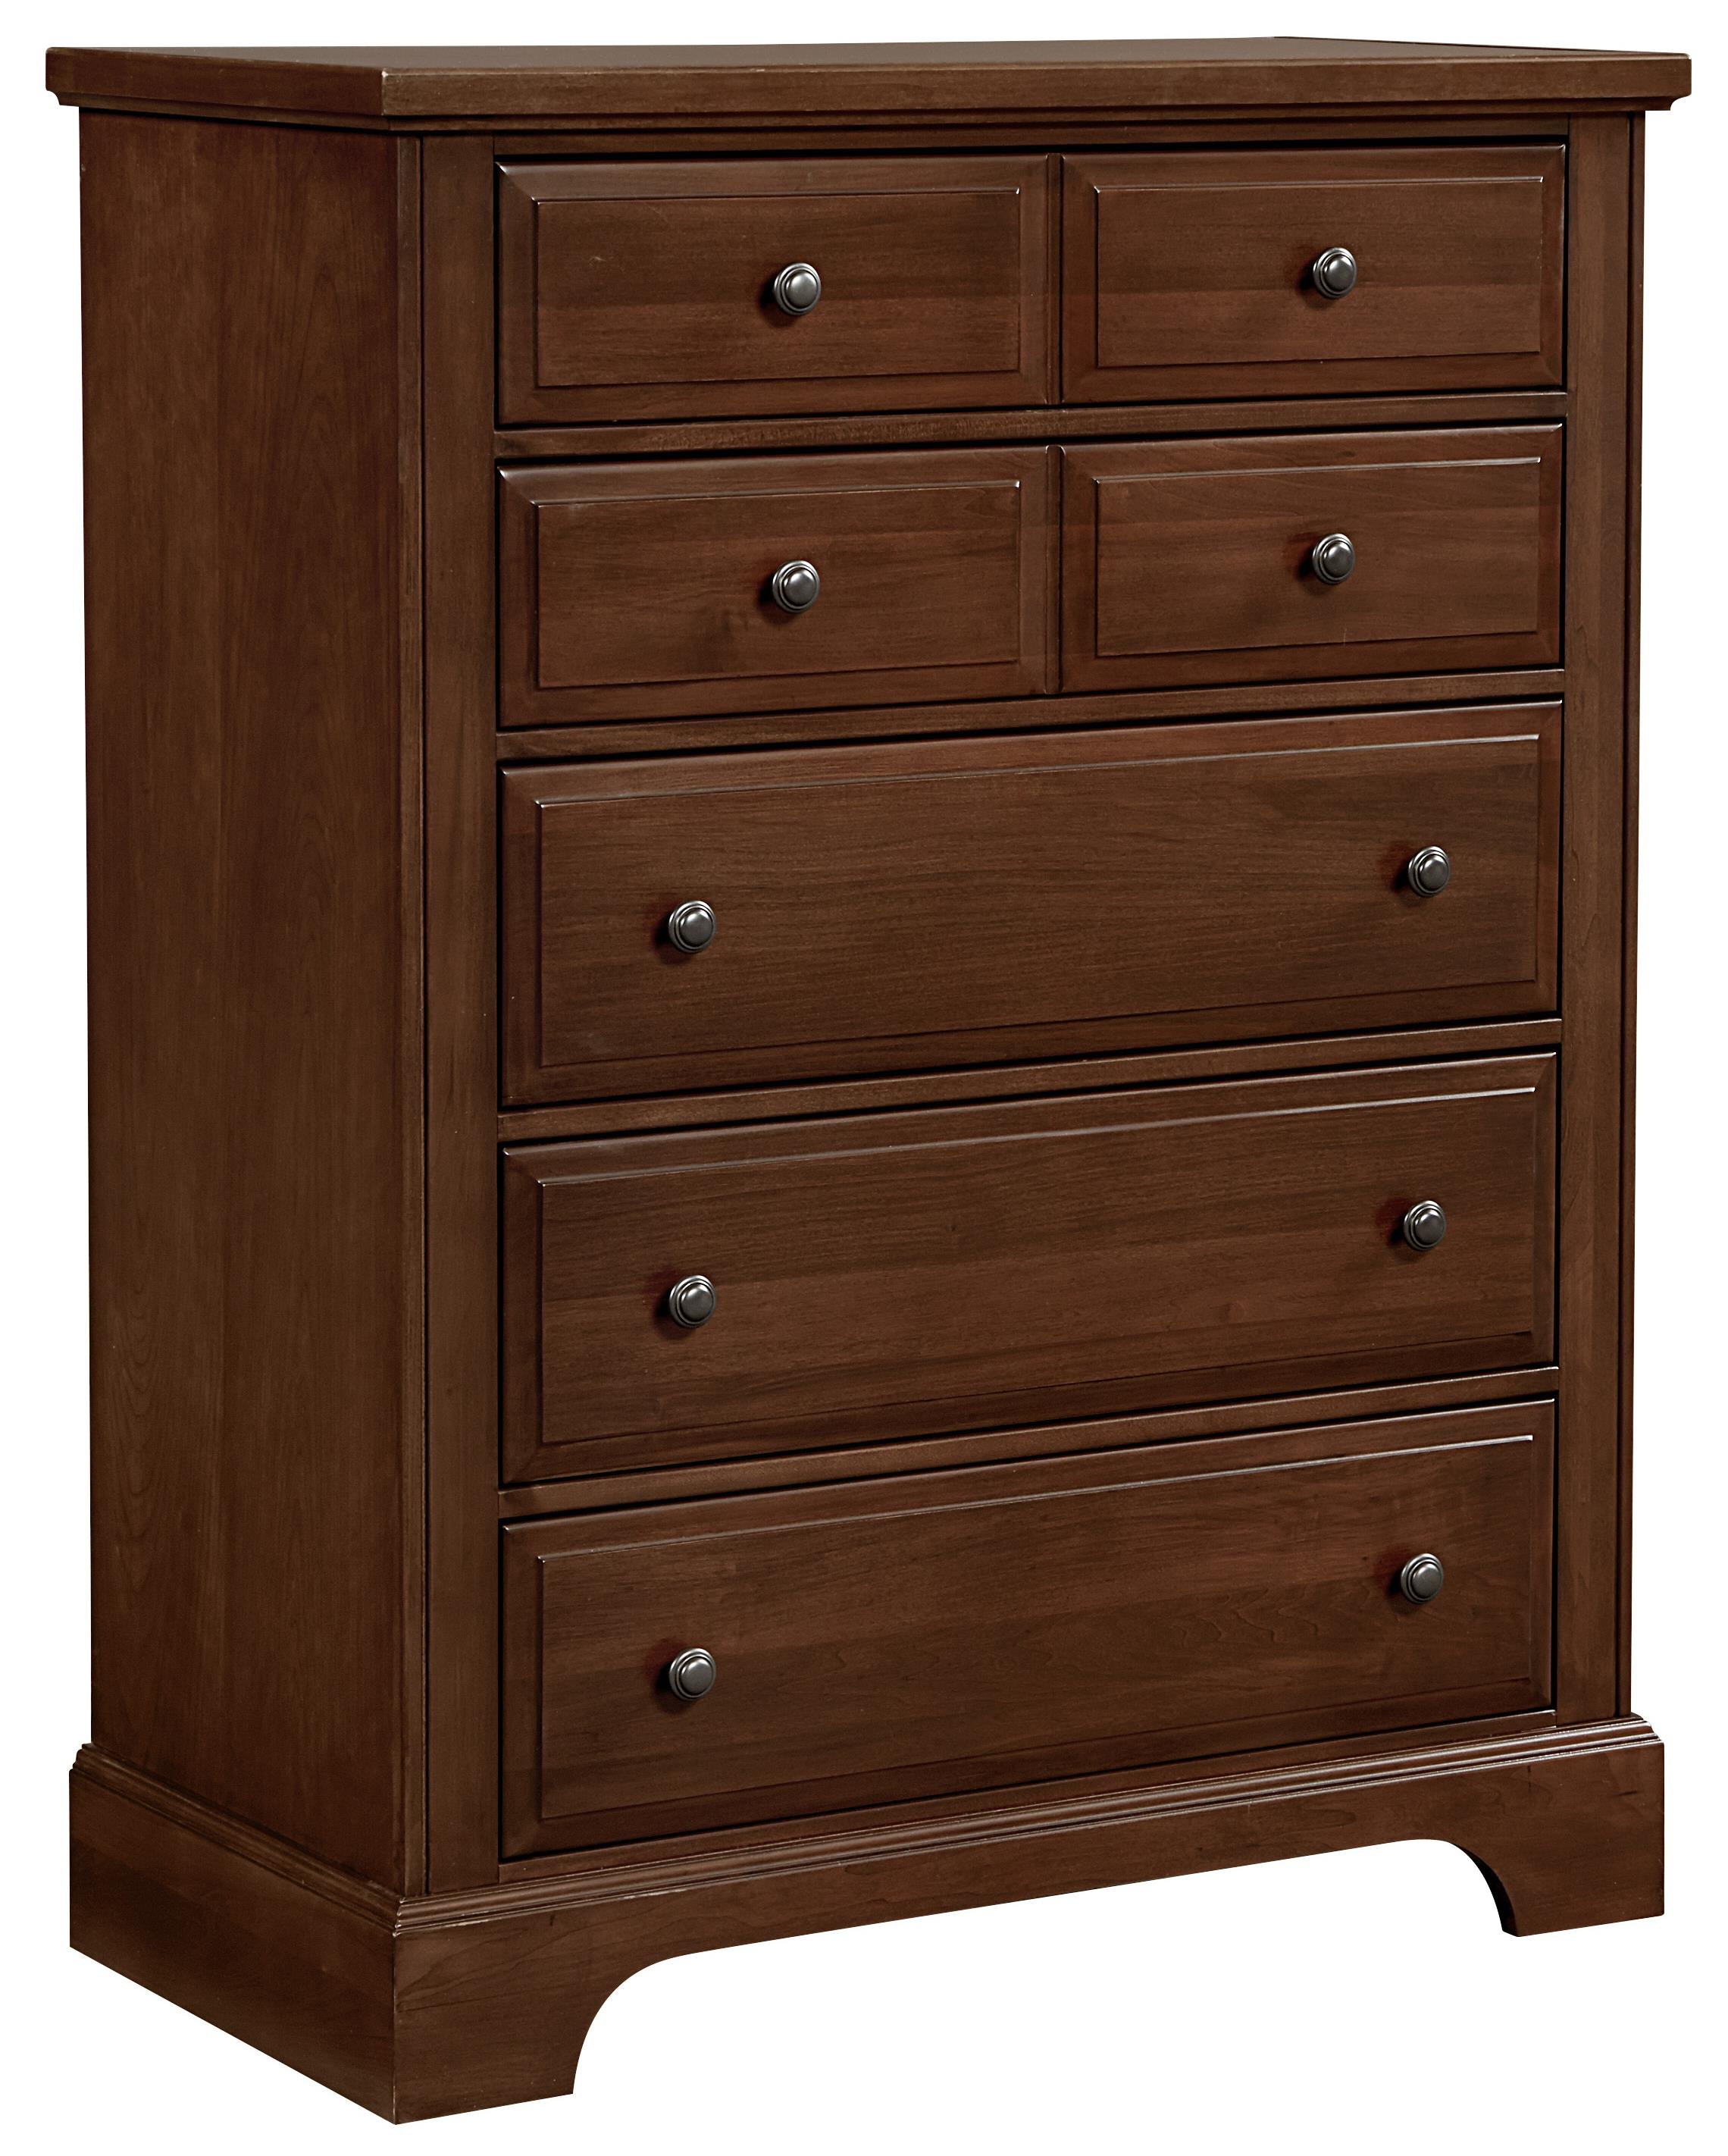 Vaughan Bassett Bedford Chest - 5 drawers - Item Number: BB89-115